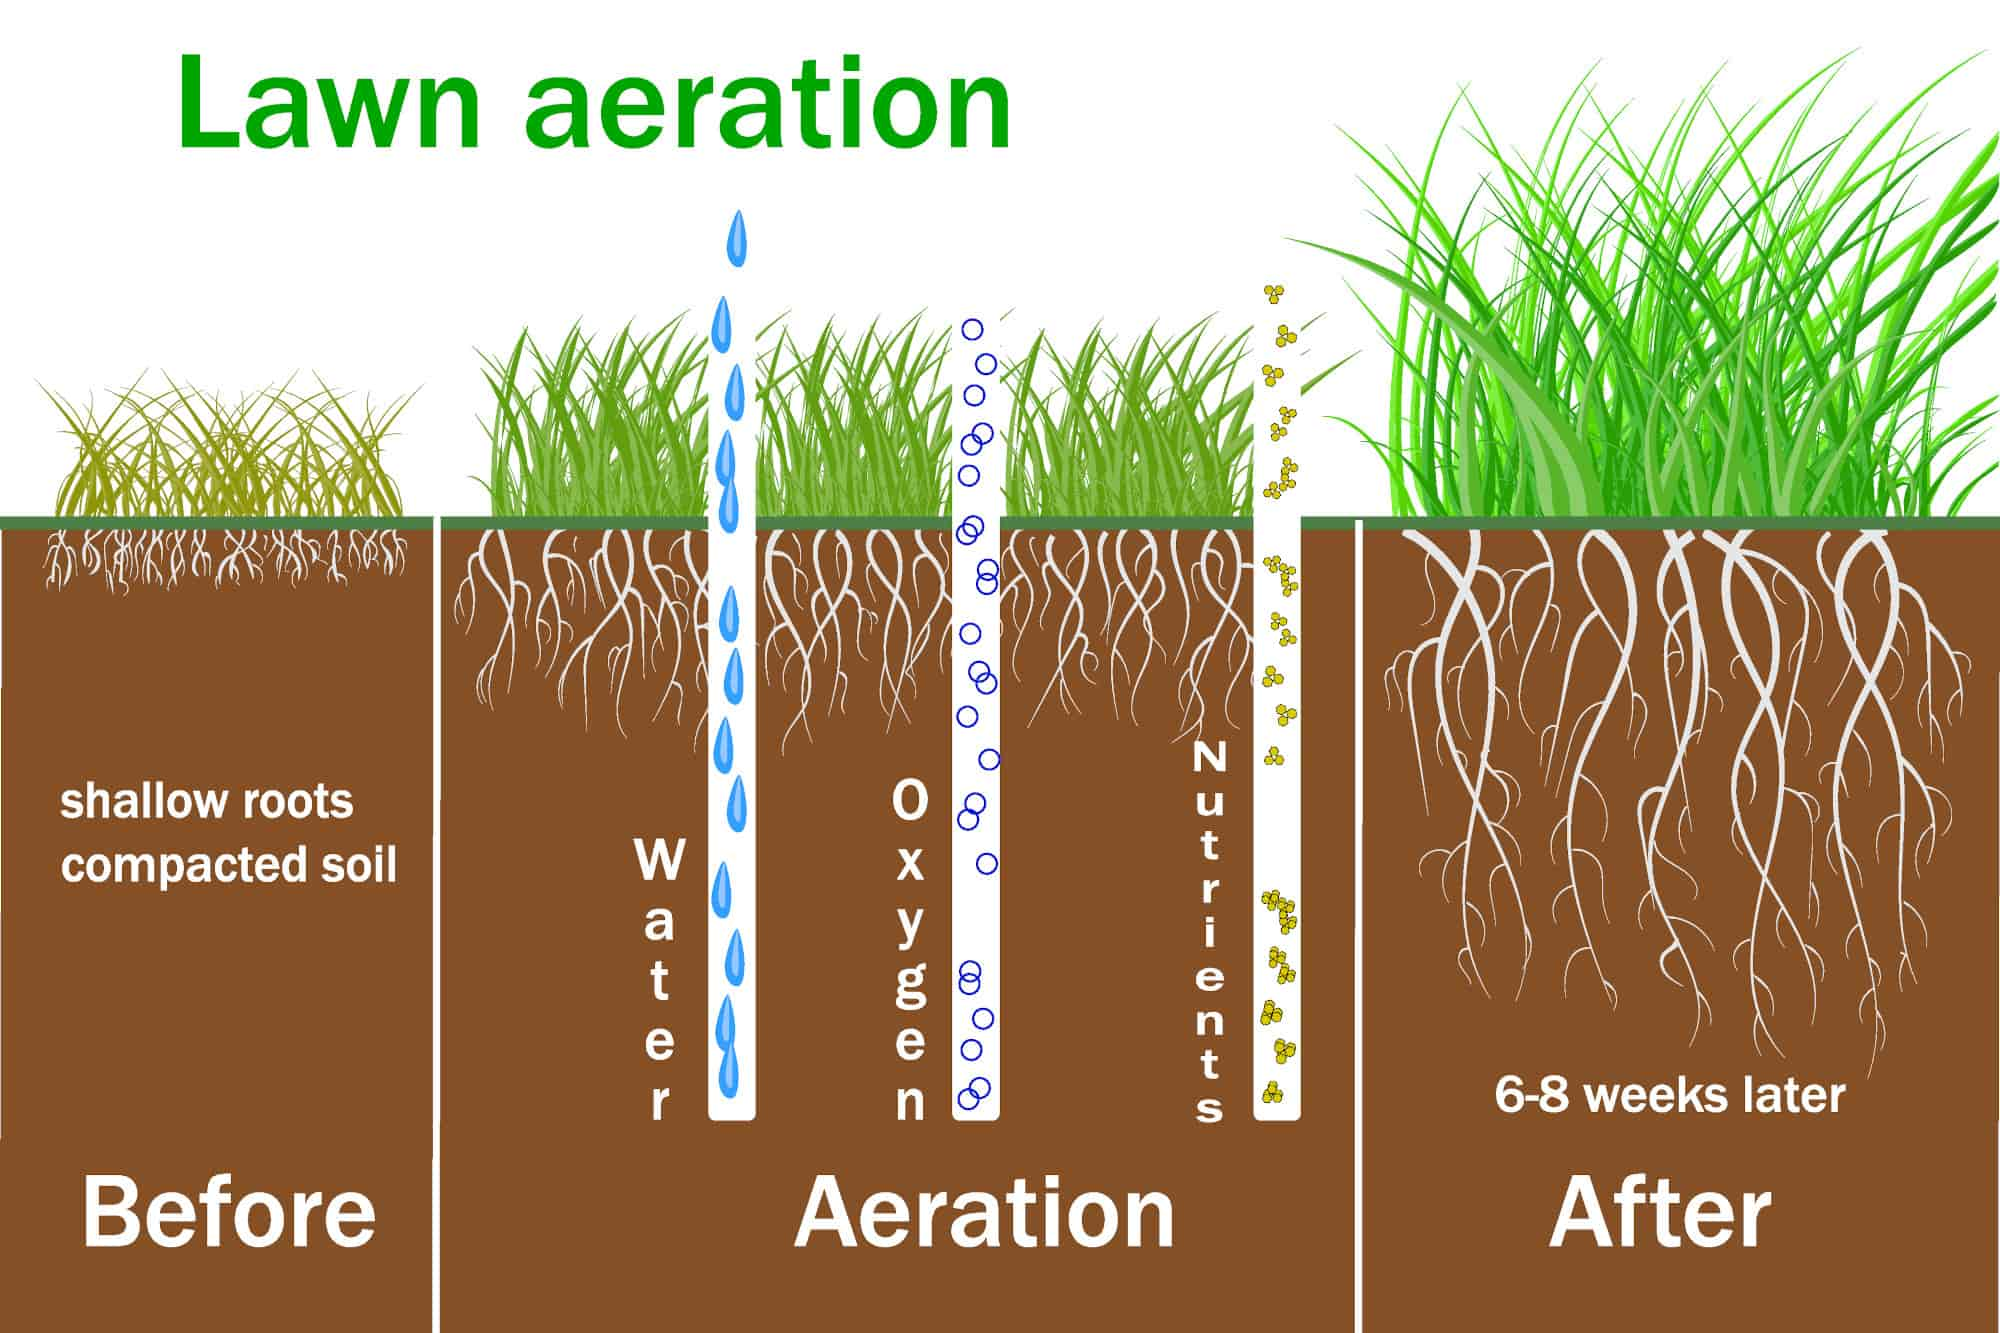 how does lawn aeration work